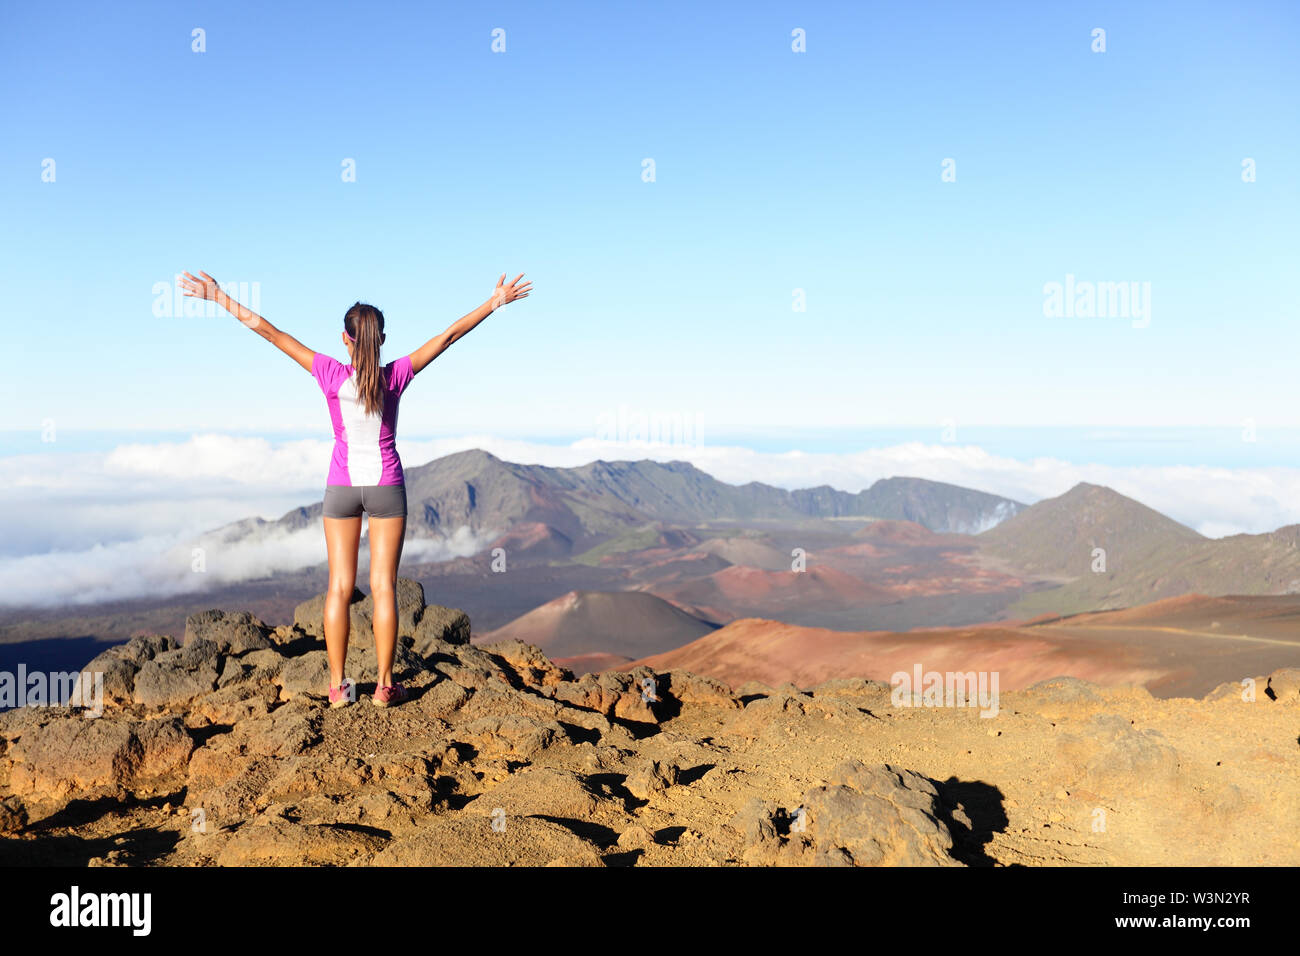 Hiking woman on top happy and celebrating success. Female hiker on top of the world cheering in winning gesture having reached summit of mountain East Maui Volcano Haleakala national park Hawaii. - Stock Image